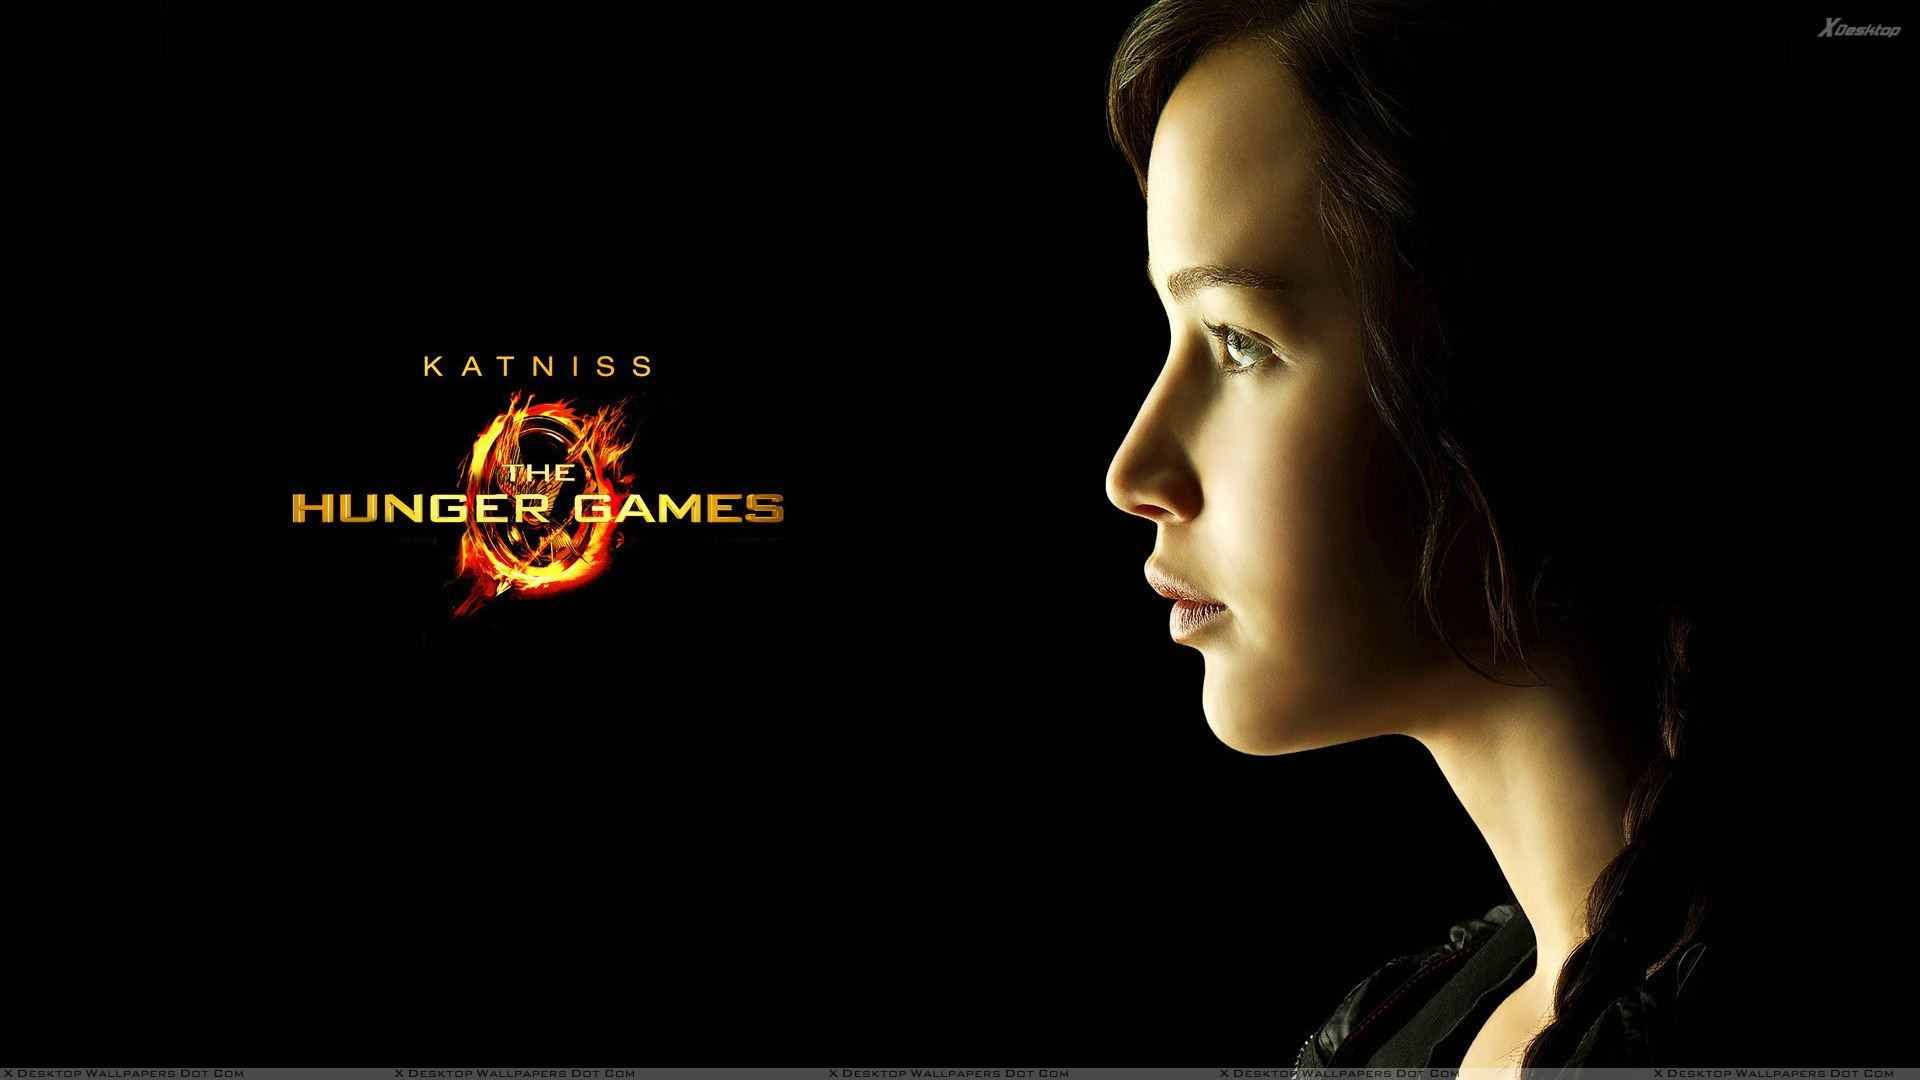 1920x1080 Jennifer Lawrence Hunger Games 15 Desktop Background Wallpaper